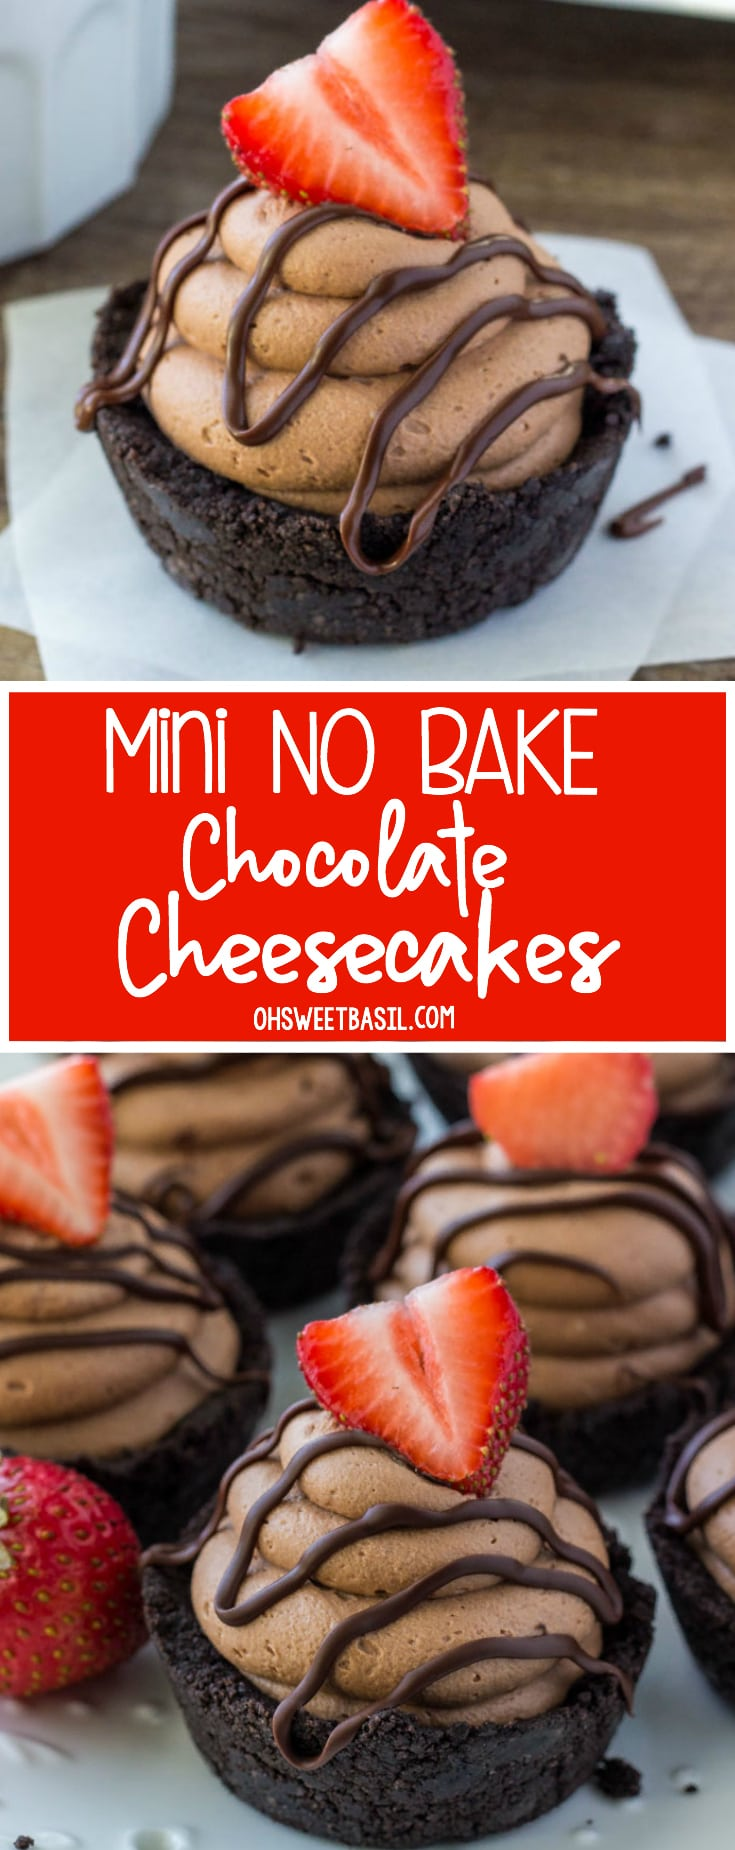 Mini Chocolate Cheesecakes with a fudge drizzle and strawberry on top